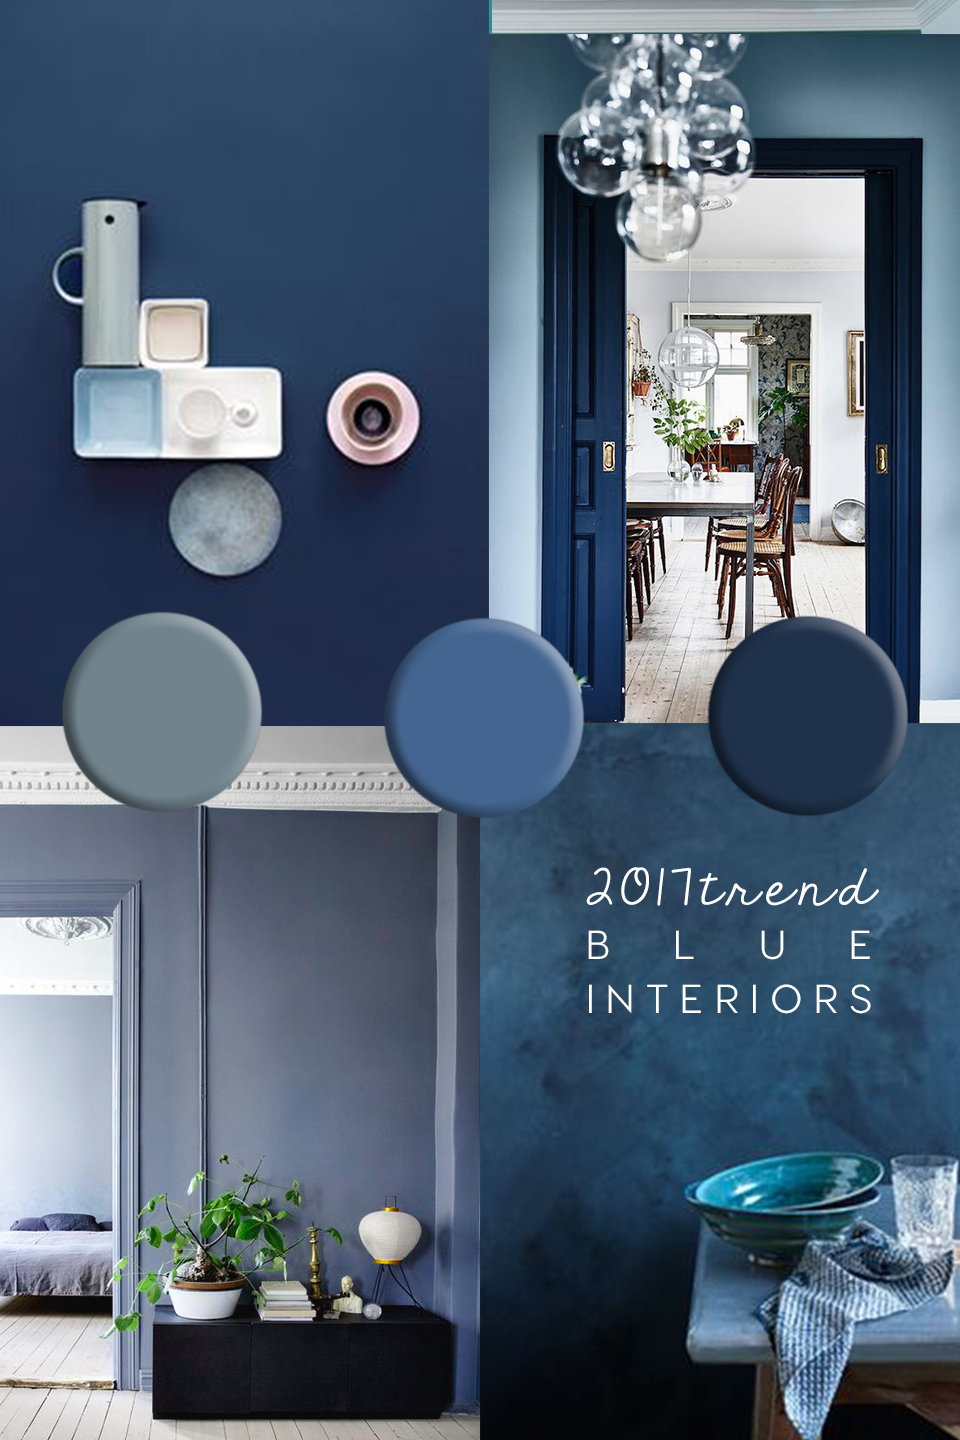 italianbark interior design blog, blue interior trend - blue interiors - blue walls - colour trends 2017 - colour 2017 - denim drift - colour of the year 2017 - blue paint trend - dulux denim drift